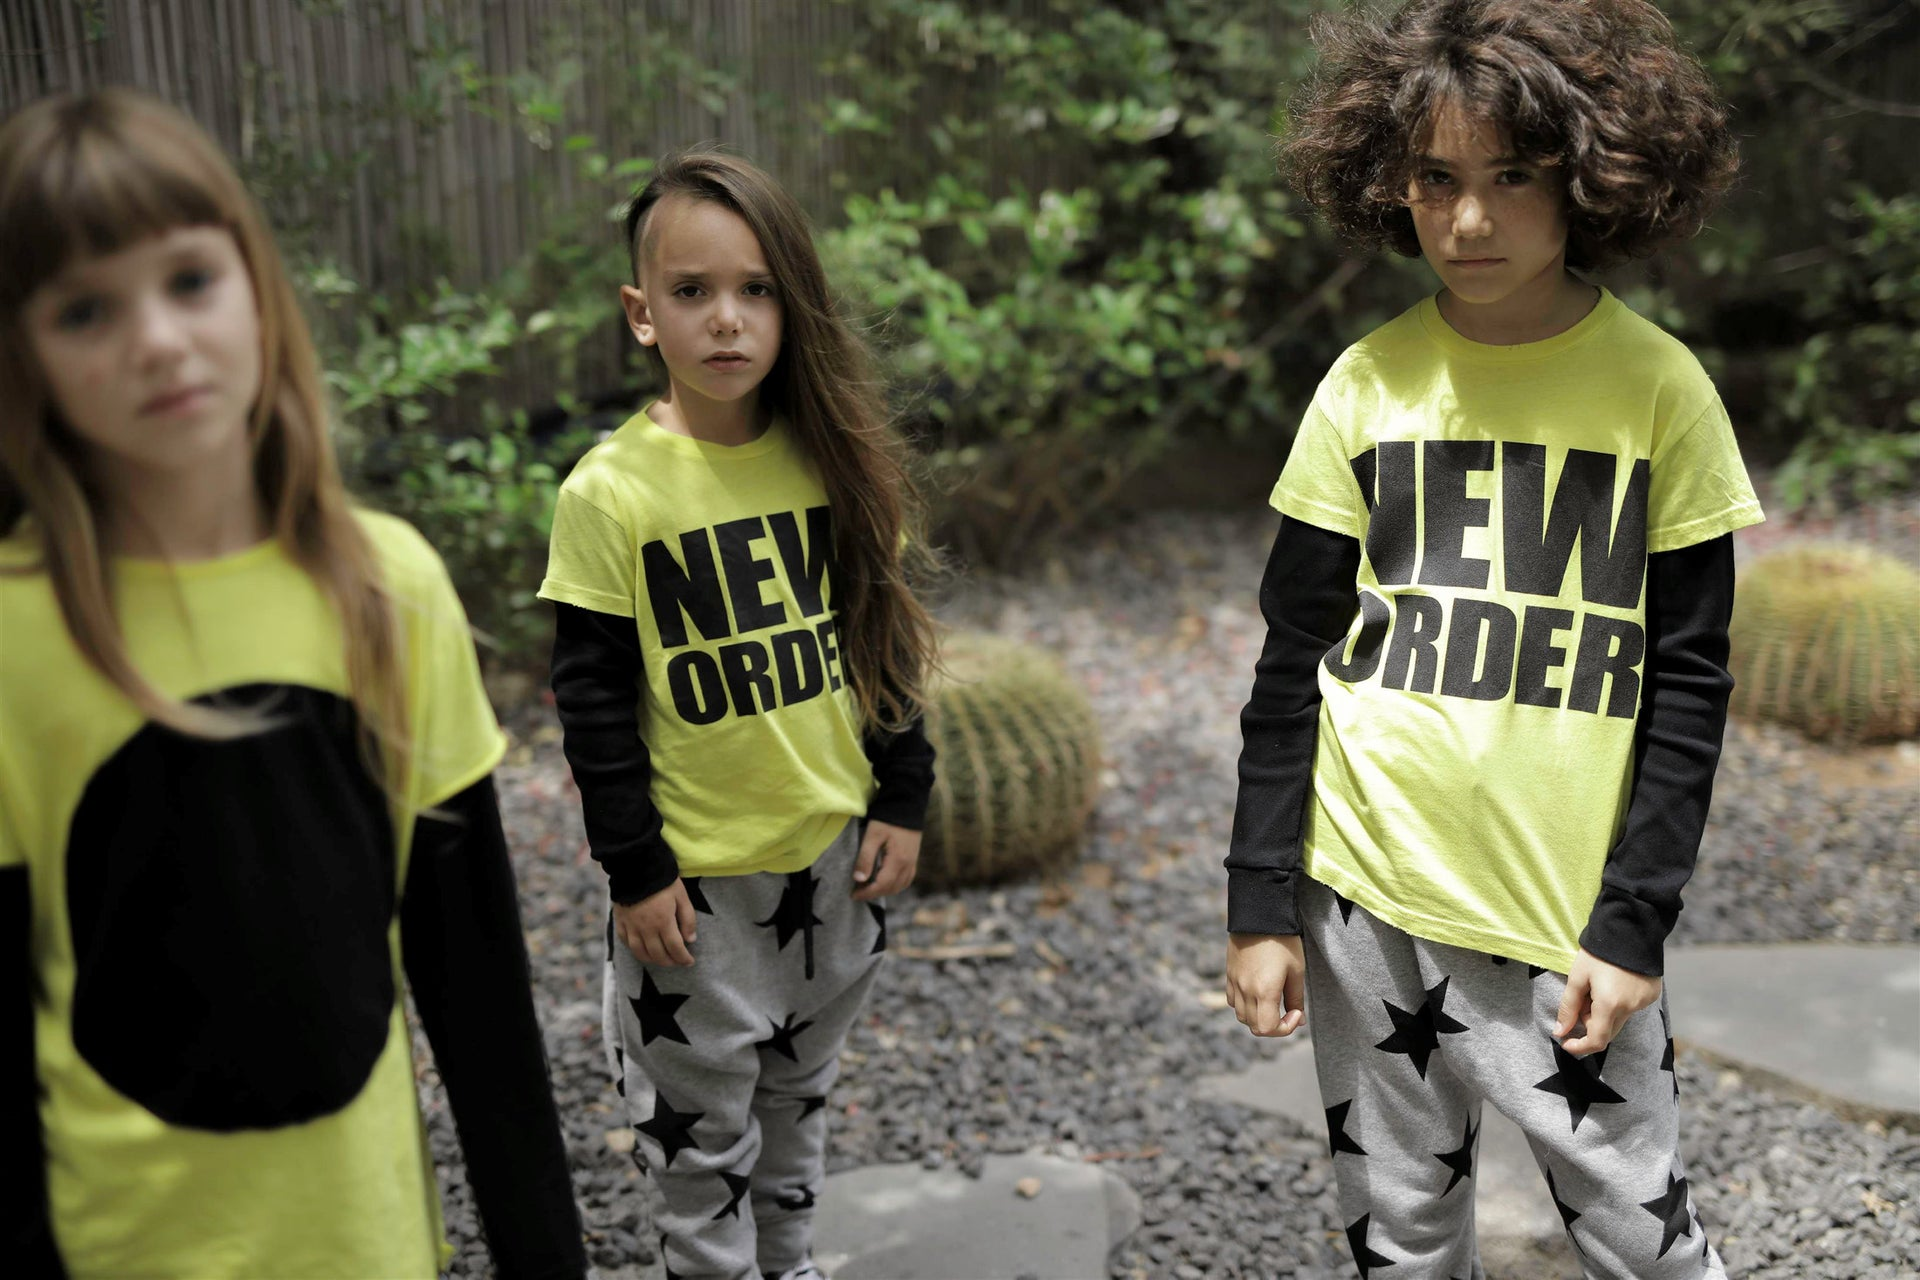 Children wearing clothes from the Celinununu collection, a joint enterprise of Israeli designers Iris Adler and Tali Milchberg, together with Canadian singer Celine Dion.